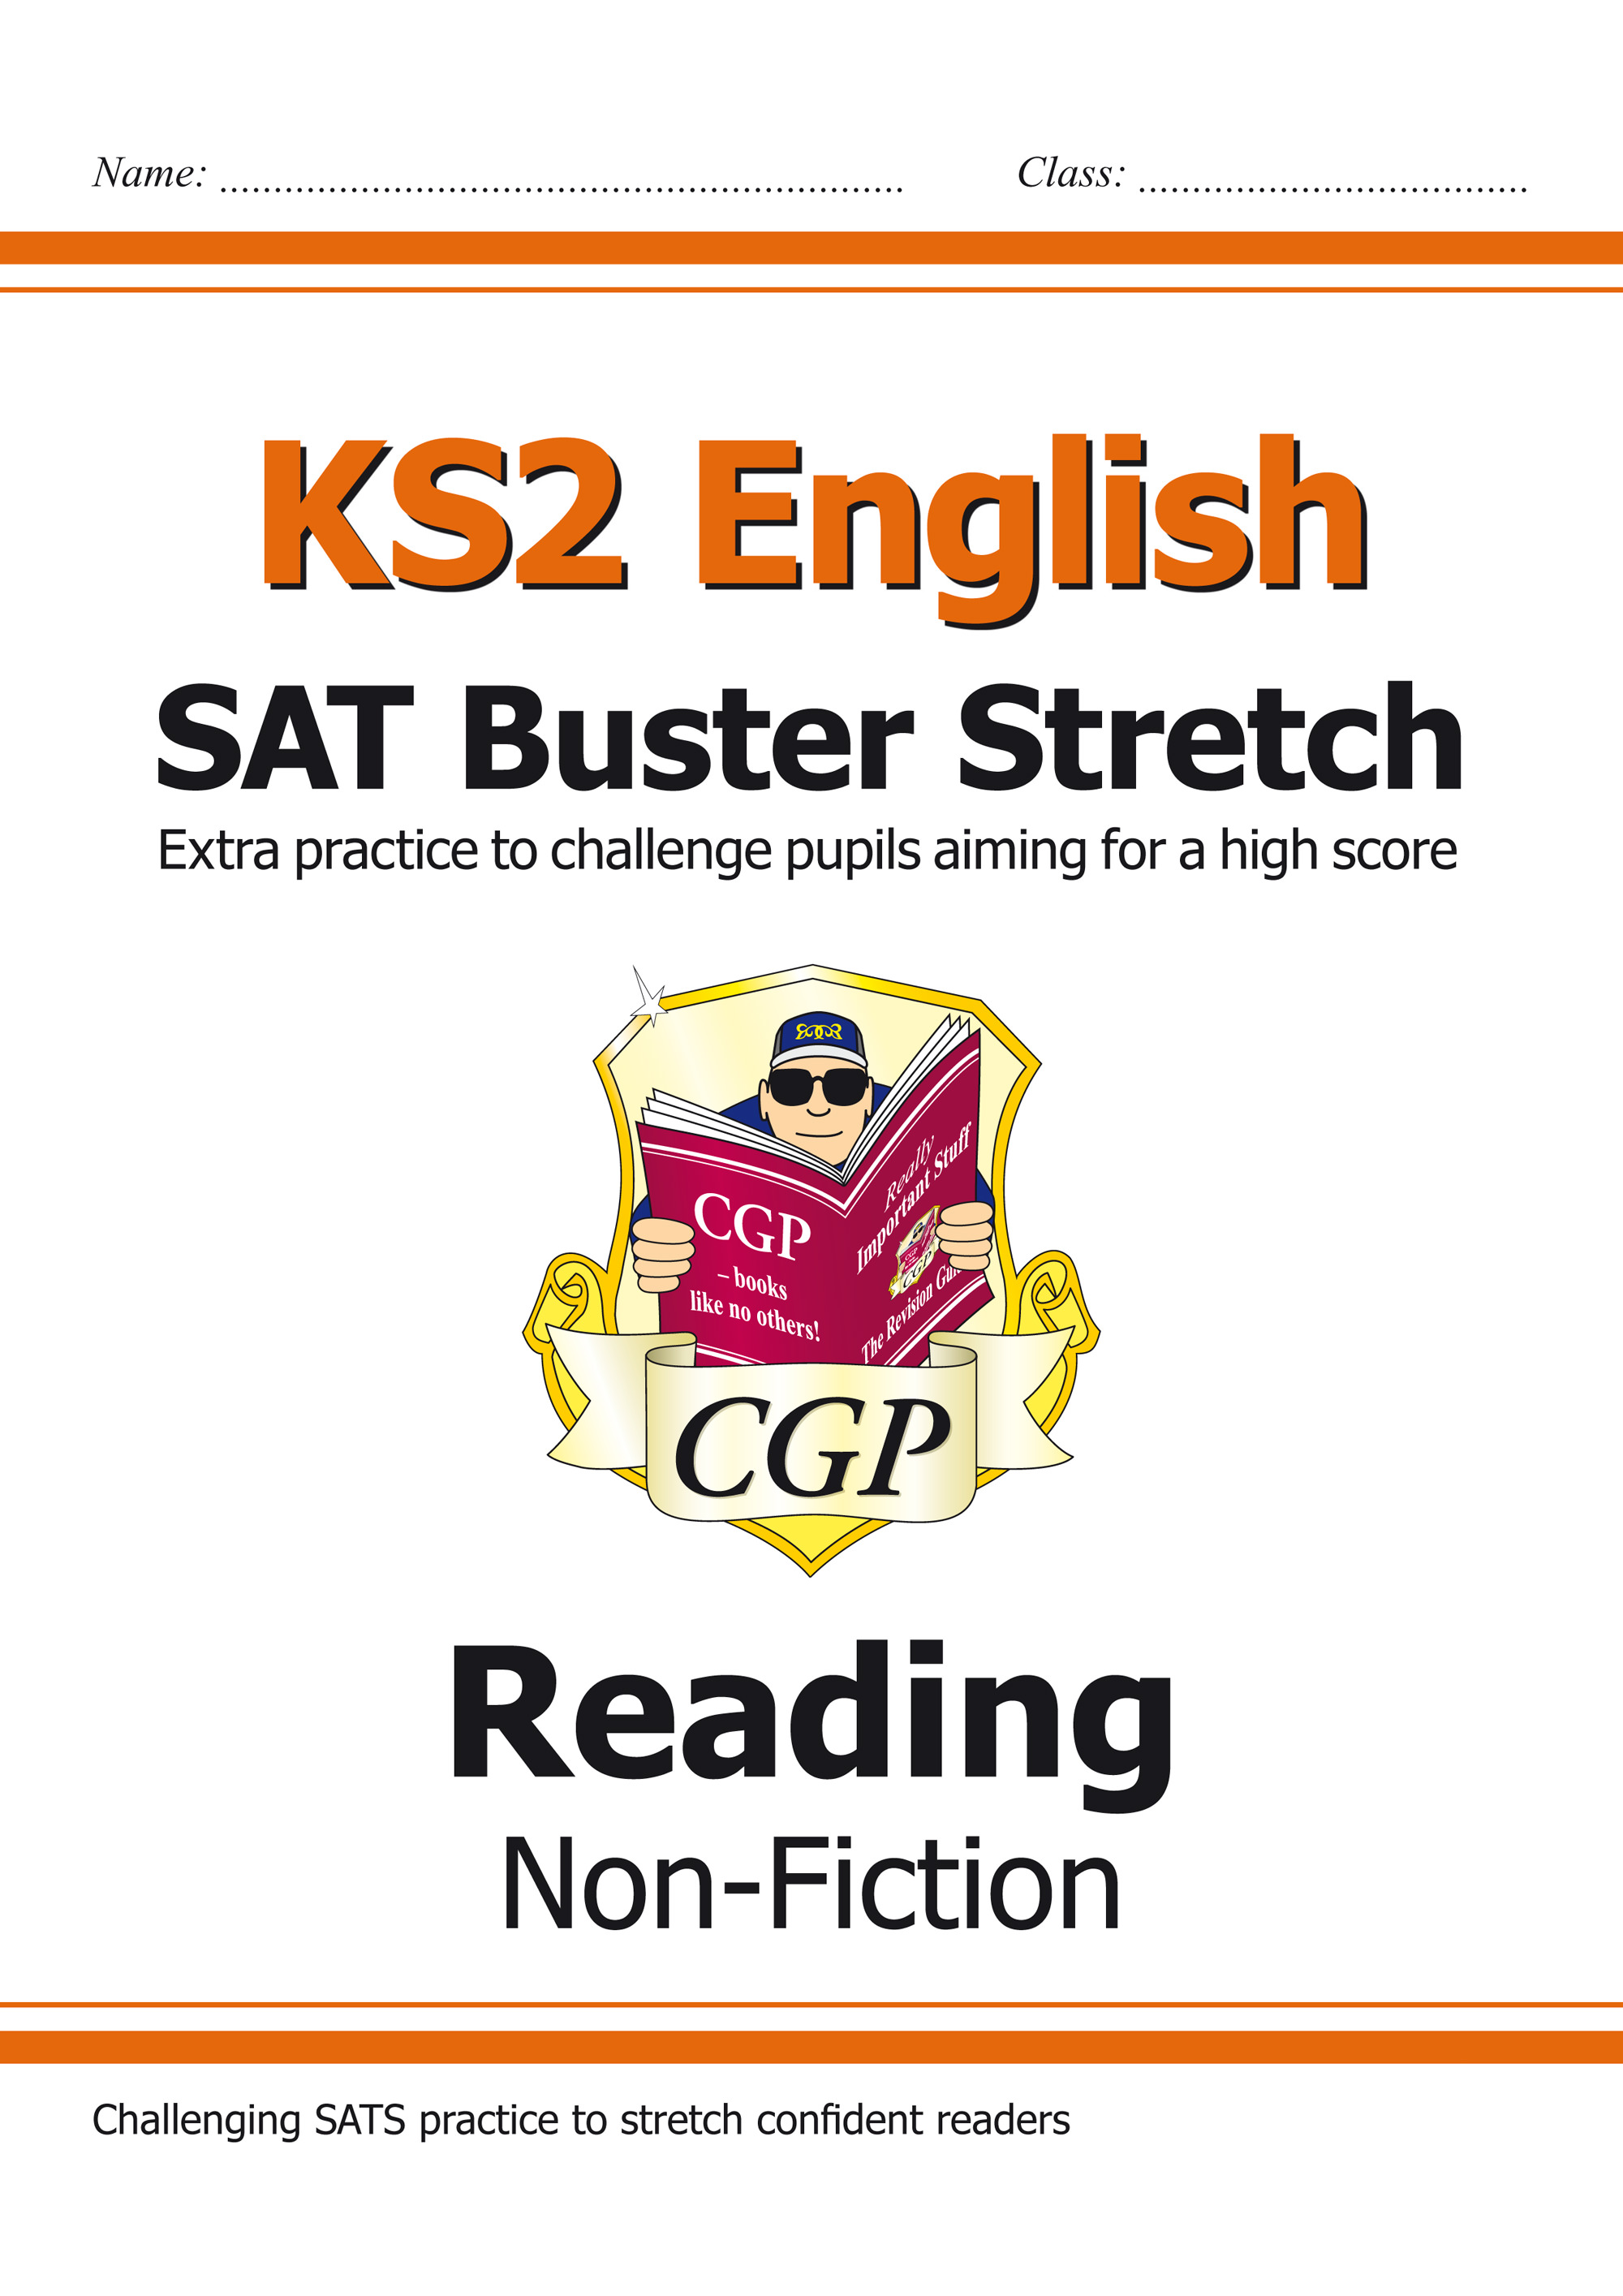 E6HRN21 - KS2 English Reading SAT Buster Stretch: Non-Fiction (for the 2019 tests)